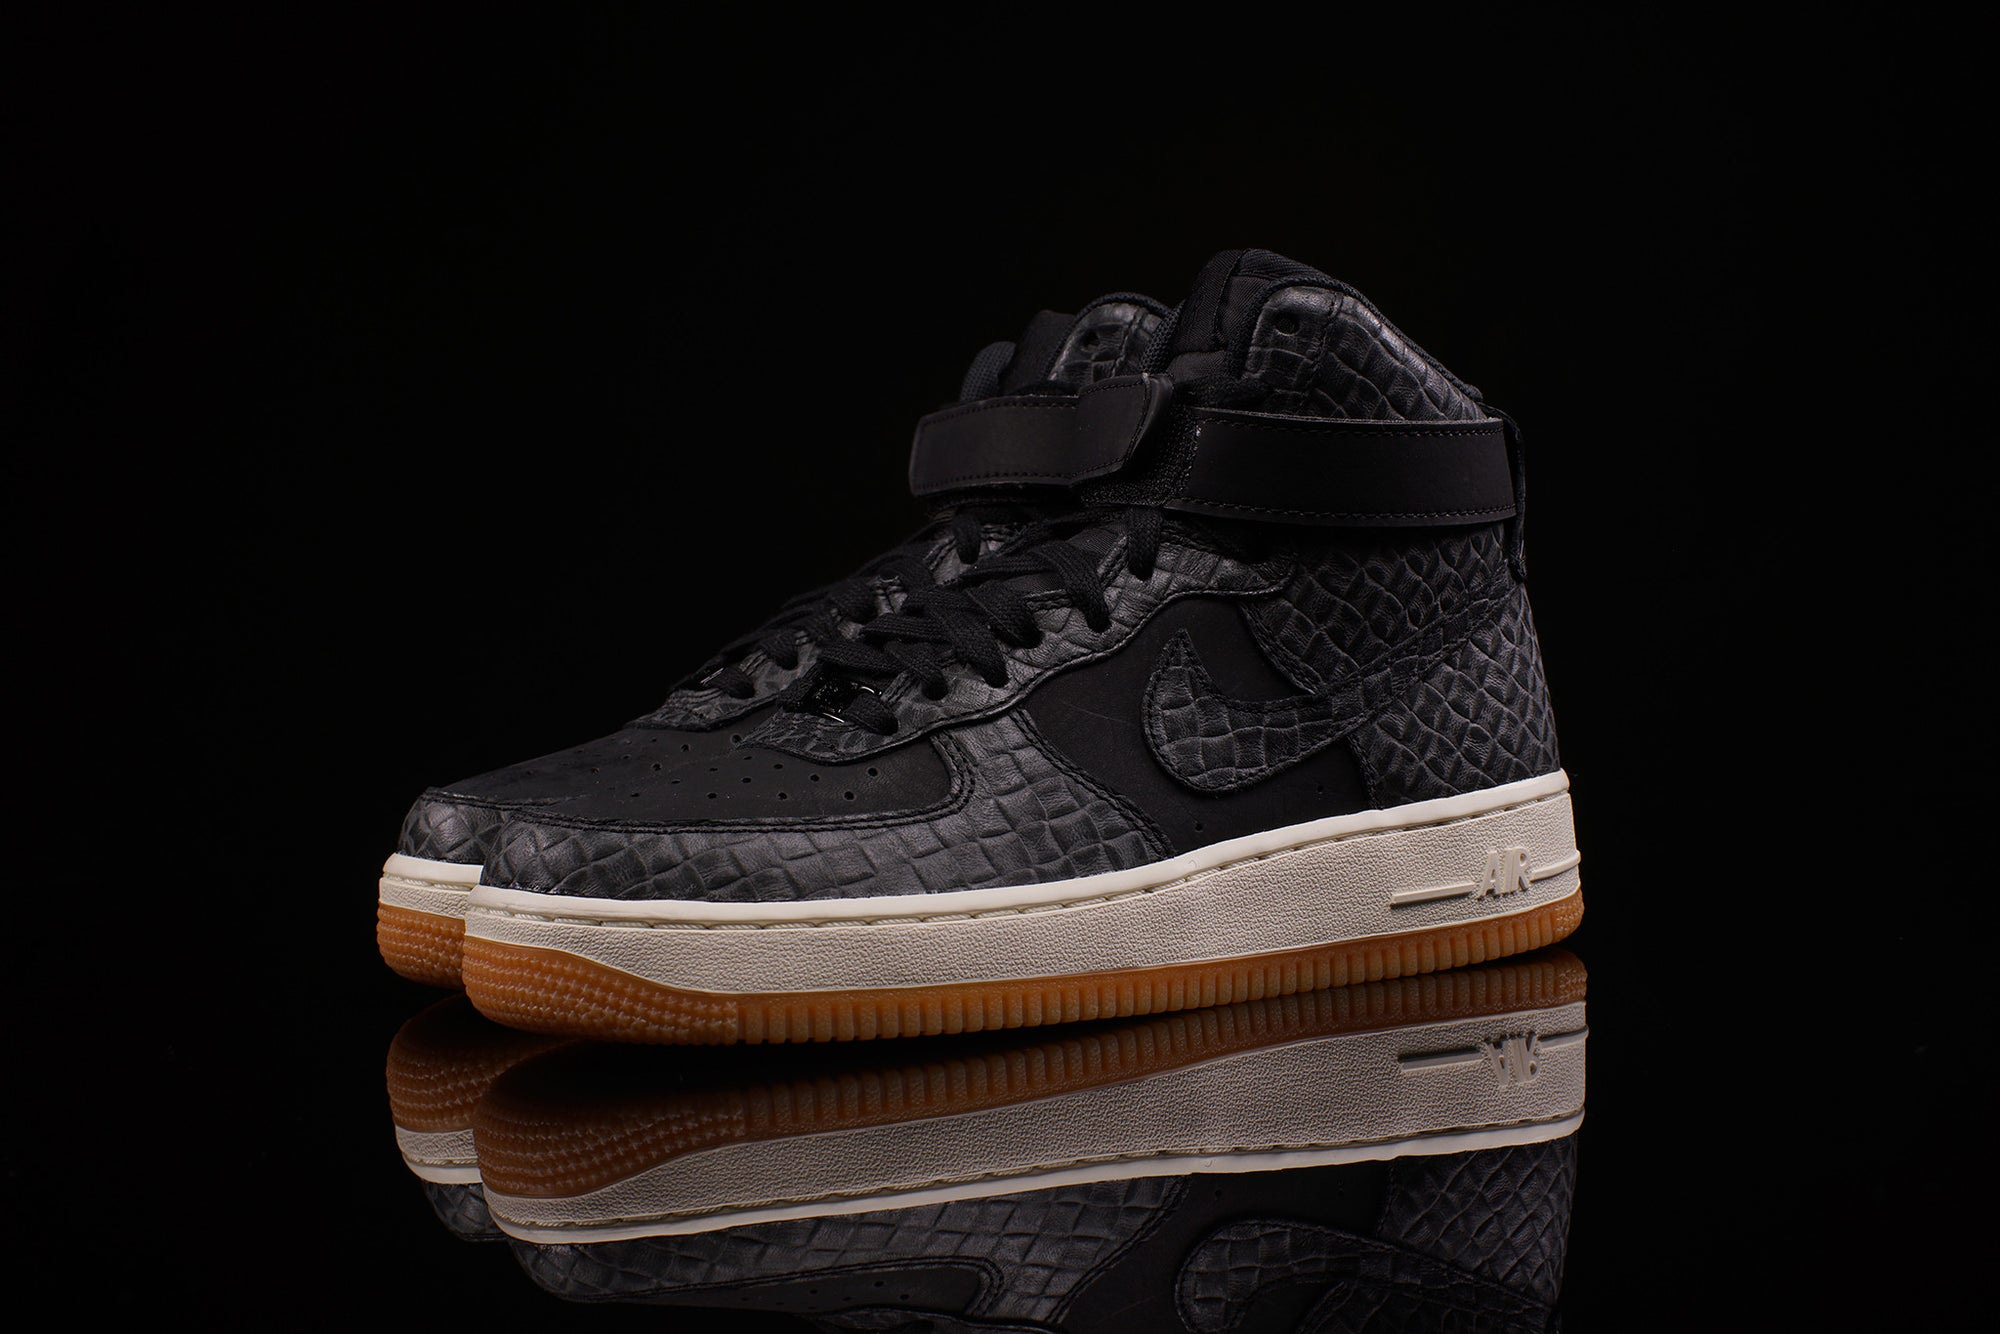 NIKE WOMENS AIR FORCE 1 HI PRM